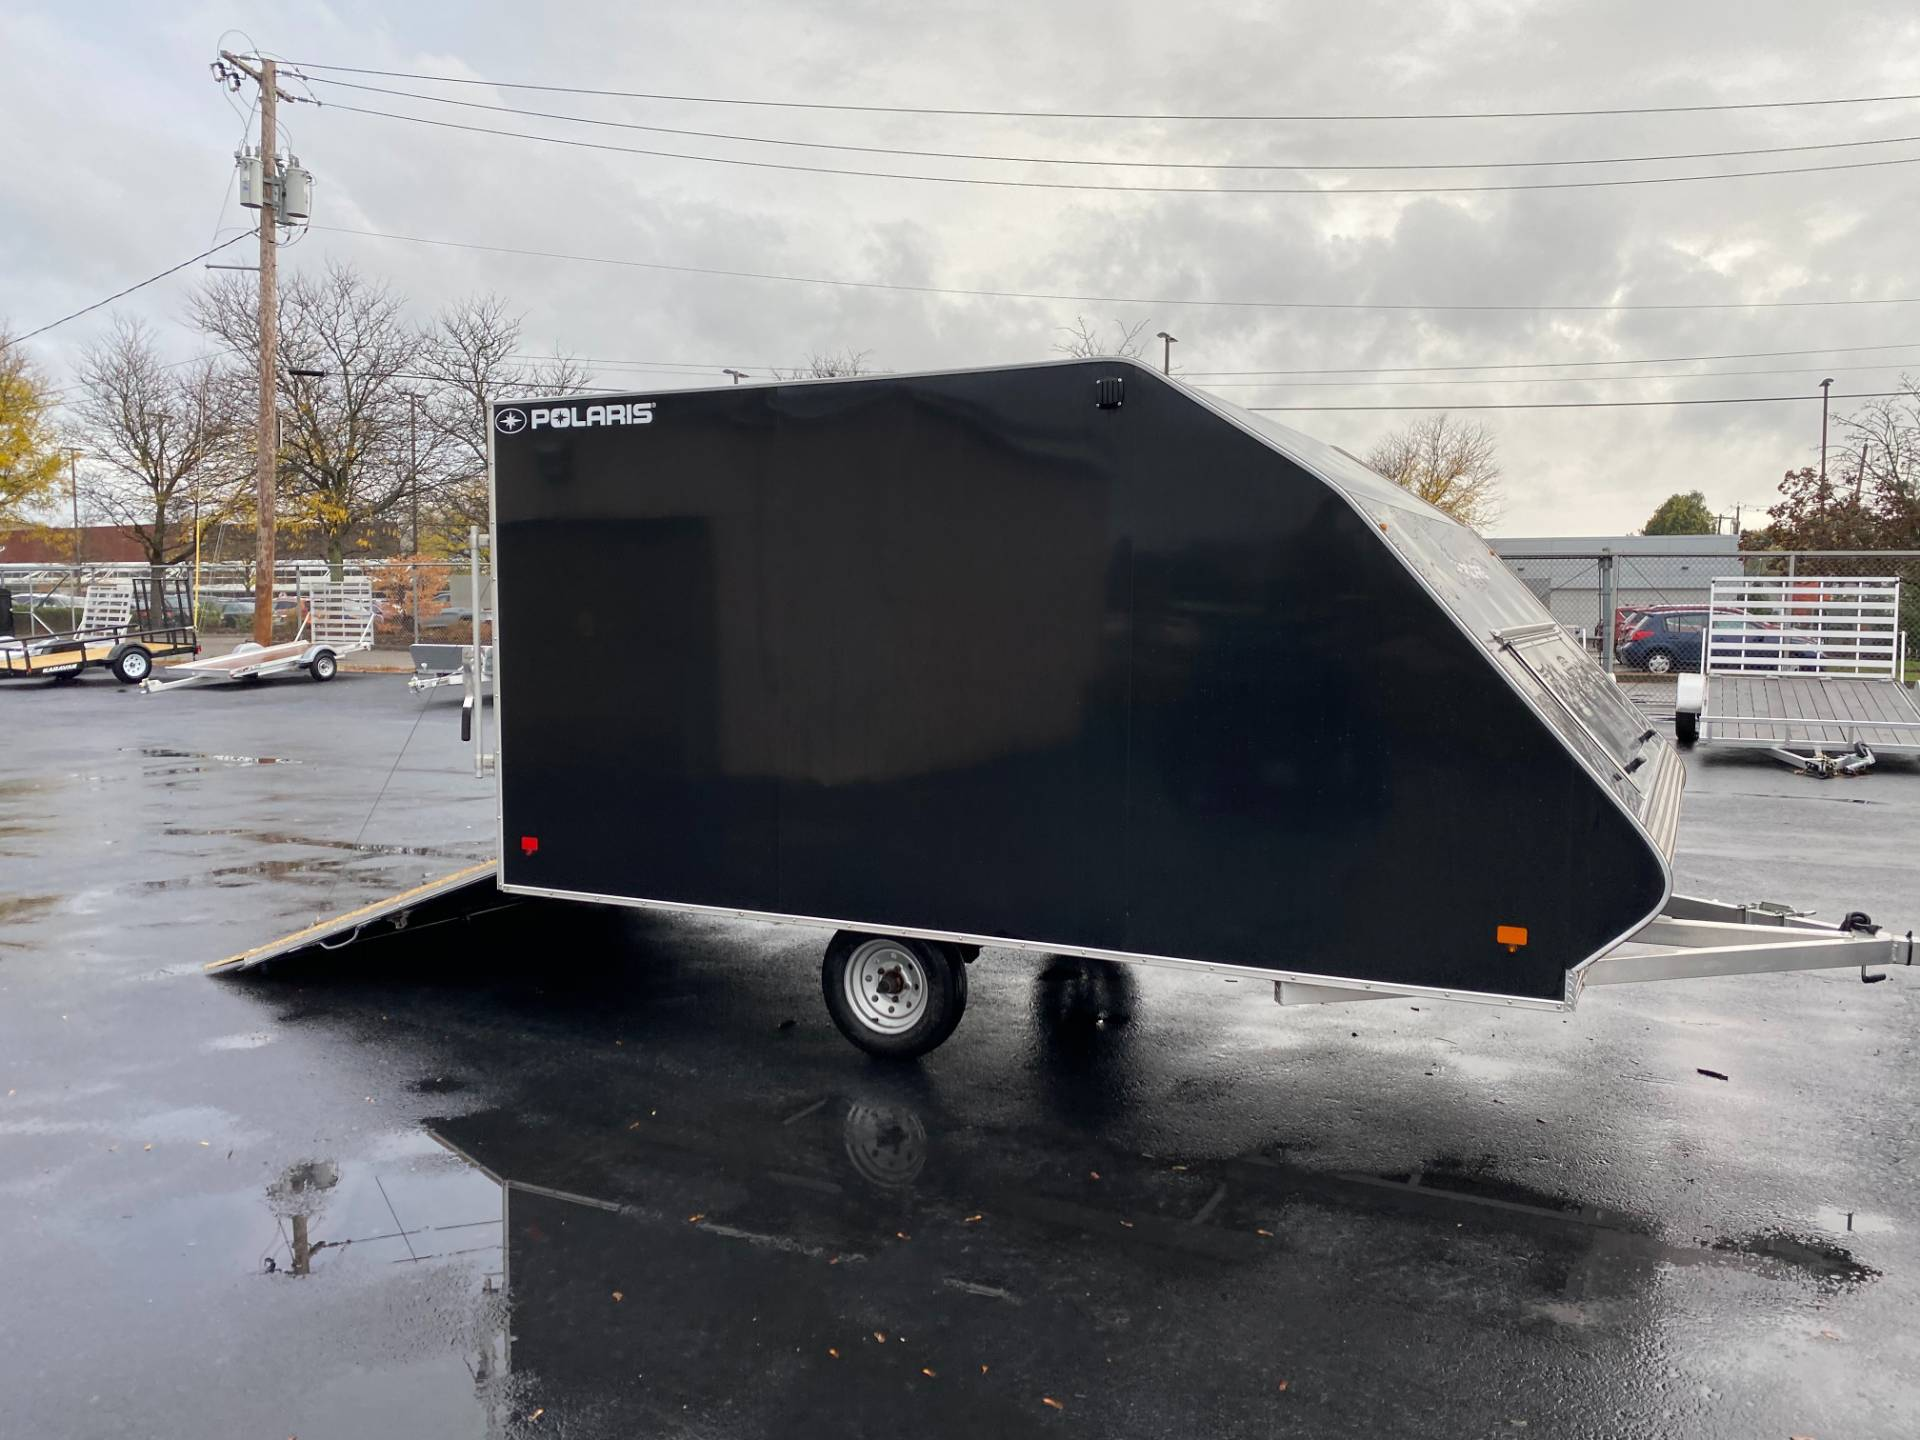 2018 Mission Trailers Crossover Snowmobile Trailers (MFS 101 x 12 Crossover) in Herkimer, New York - Photo 16